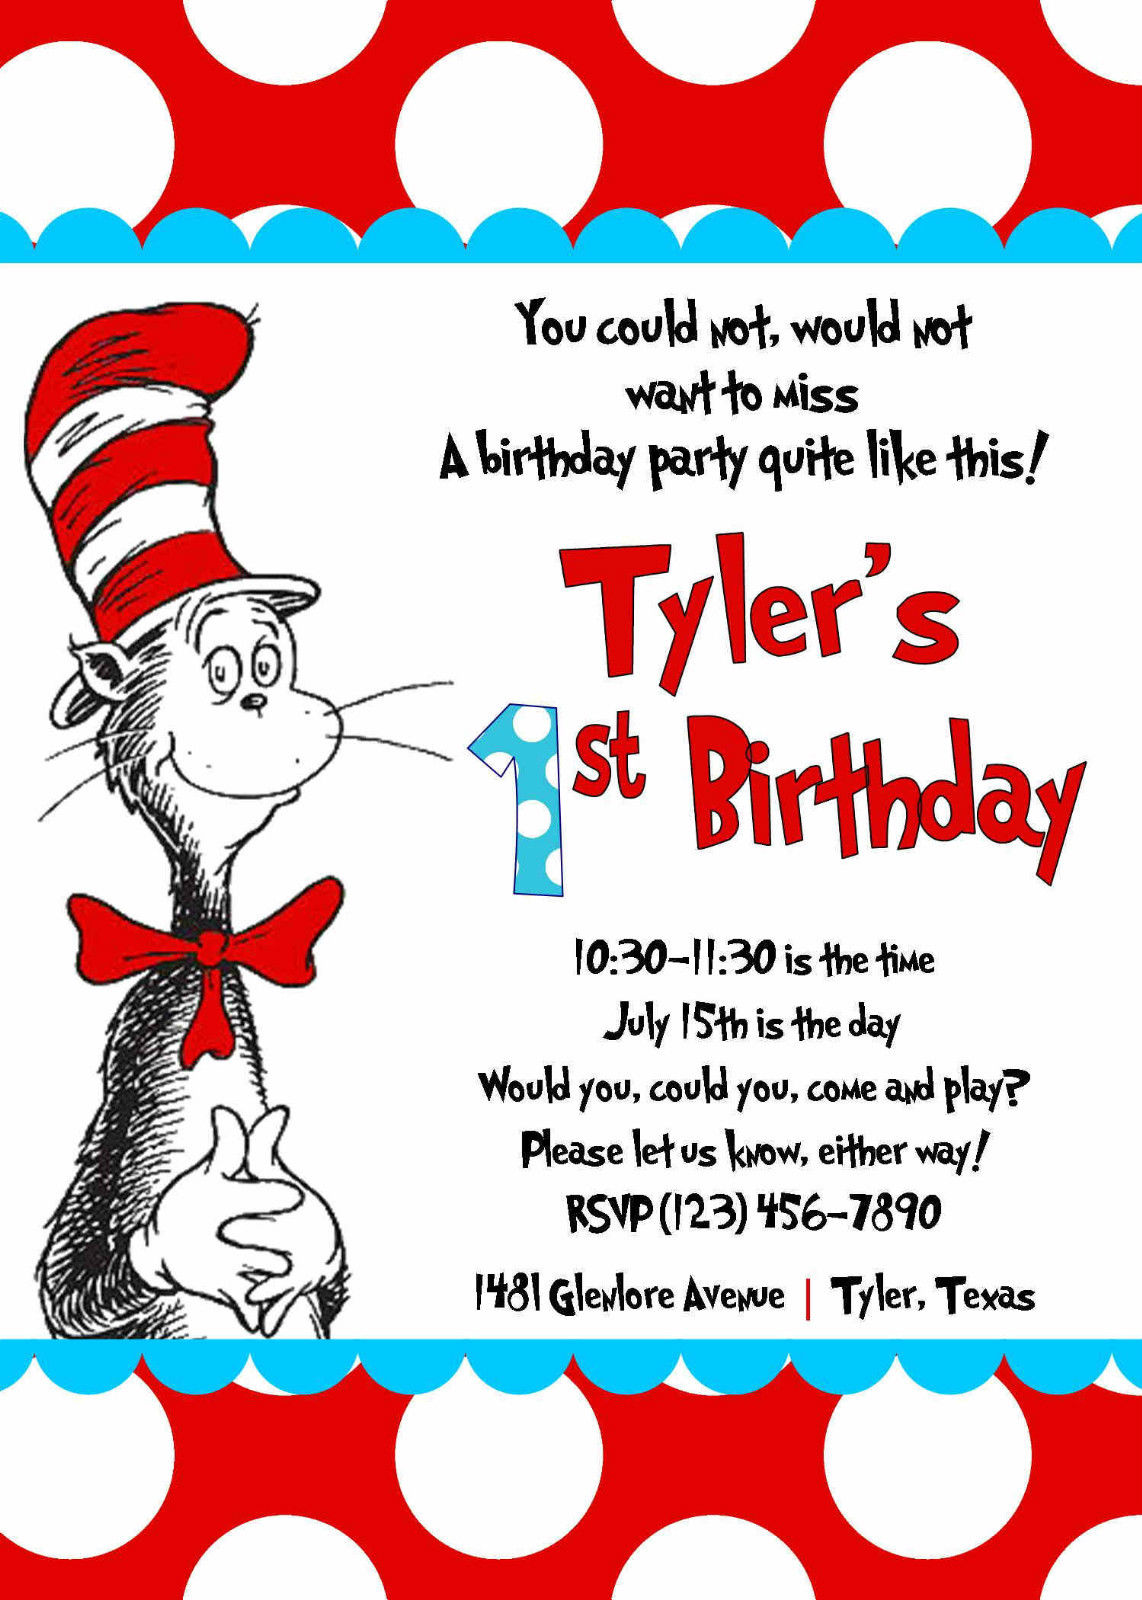 cat birthday invitation templates ; cat-in-the-hat-birthday-invitations-and-the-invitations-of-the-Birthday-Invitation-Templates-to-the-party-sketch-with-cool-idea-4